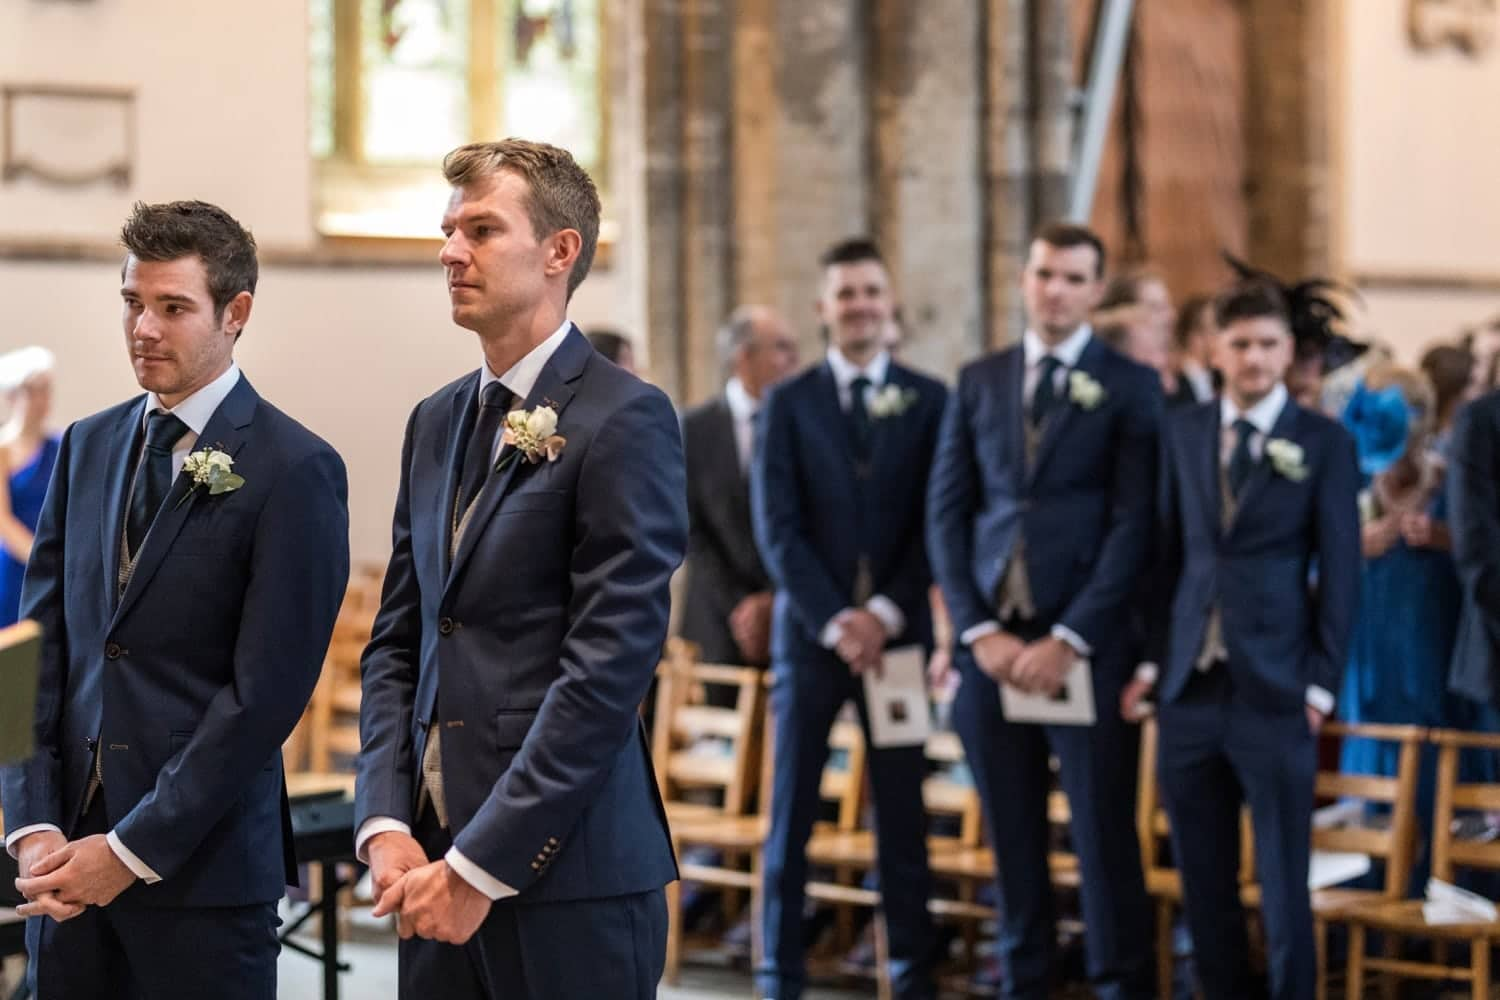 Groom waits at church alter for bride